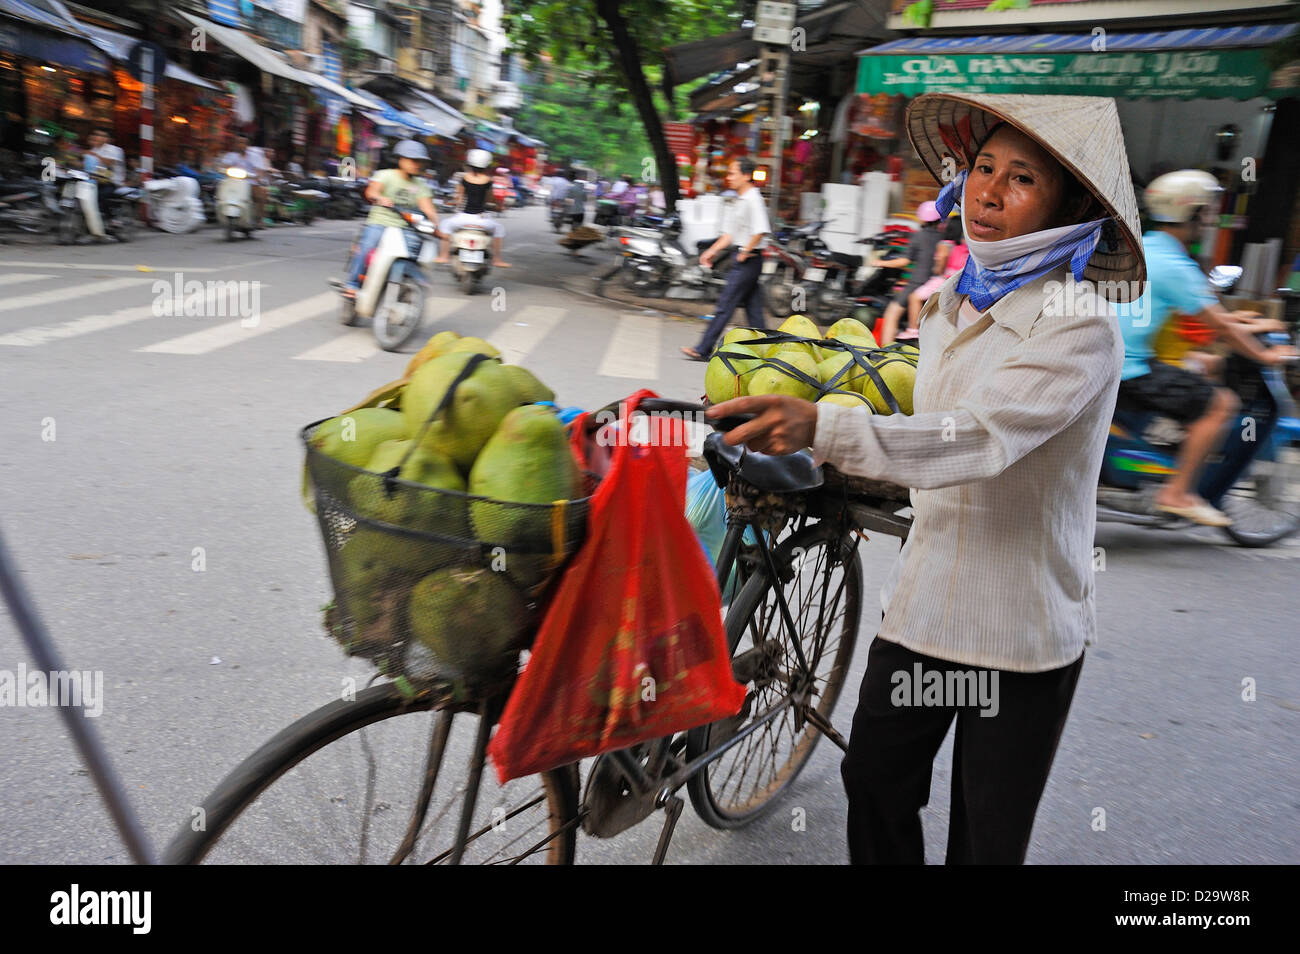 Hanoi, Vietnam - Woman selling / carrying fruit - people in Vietnam street scene - Stock Image